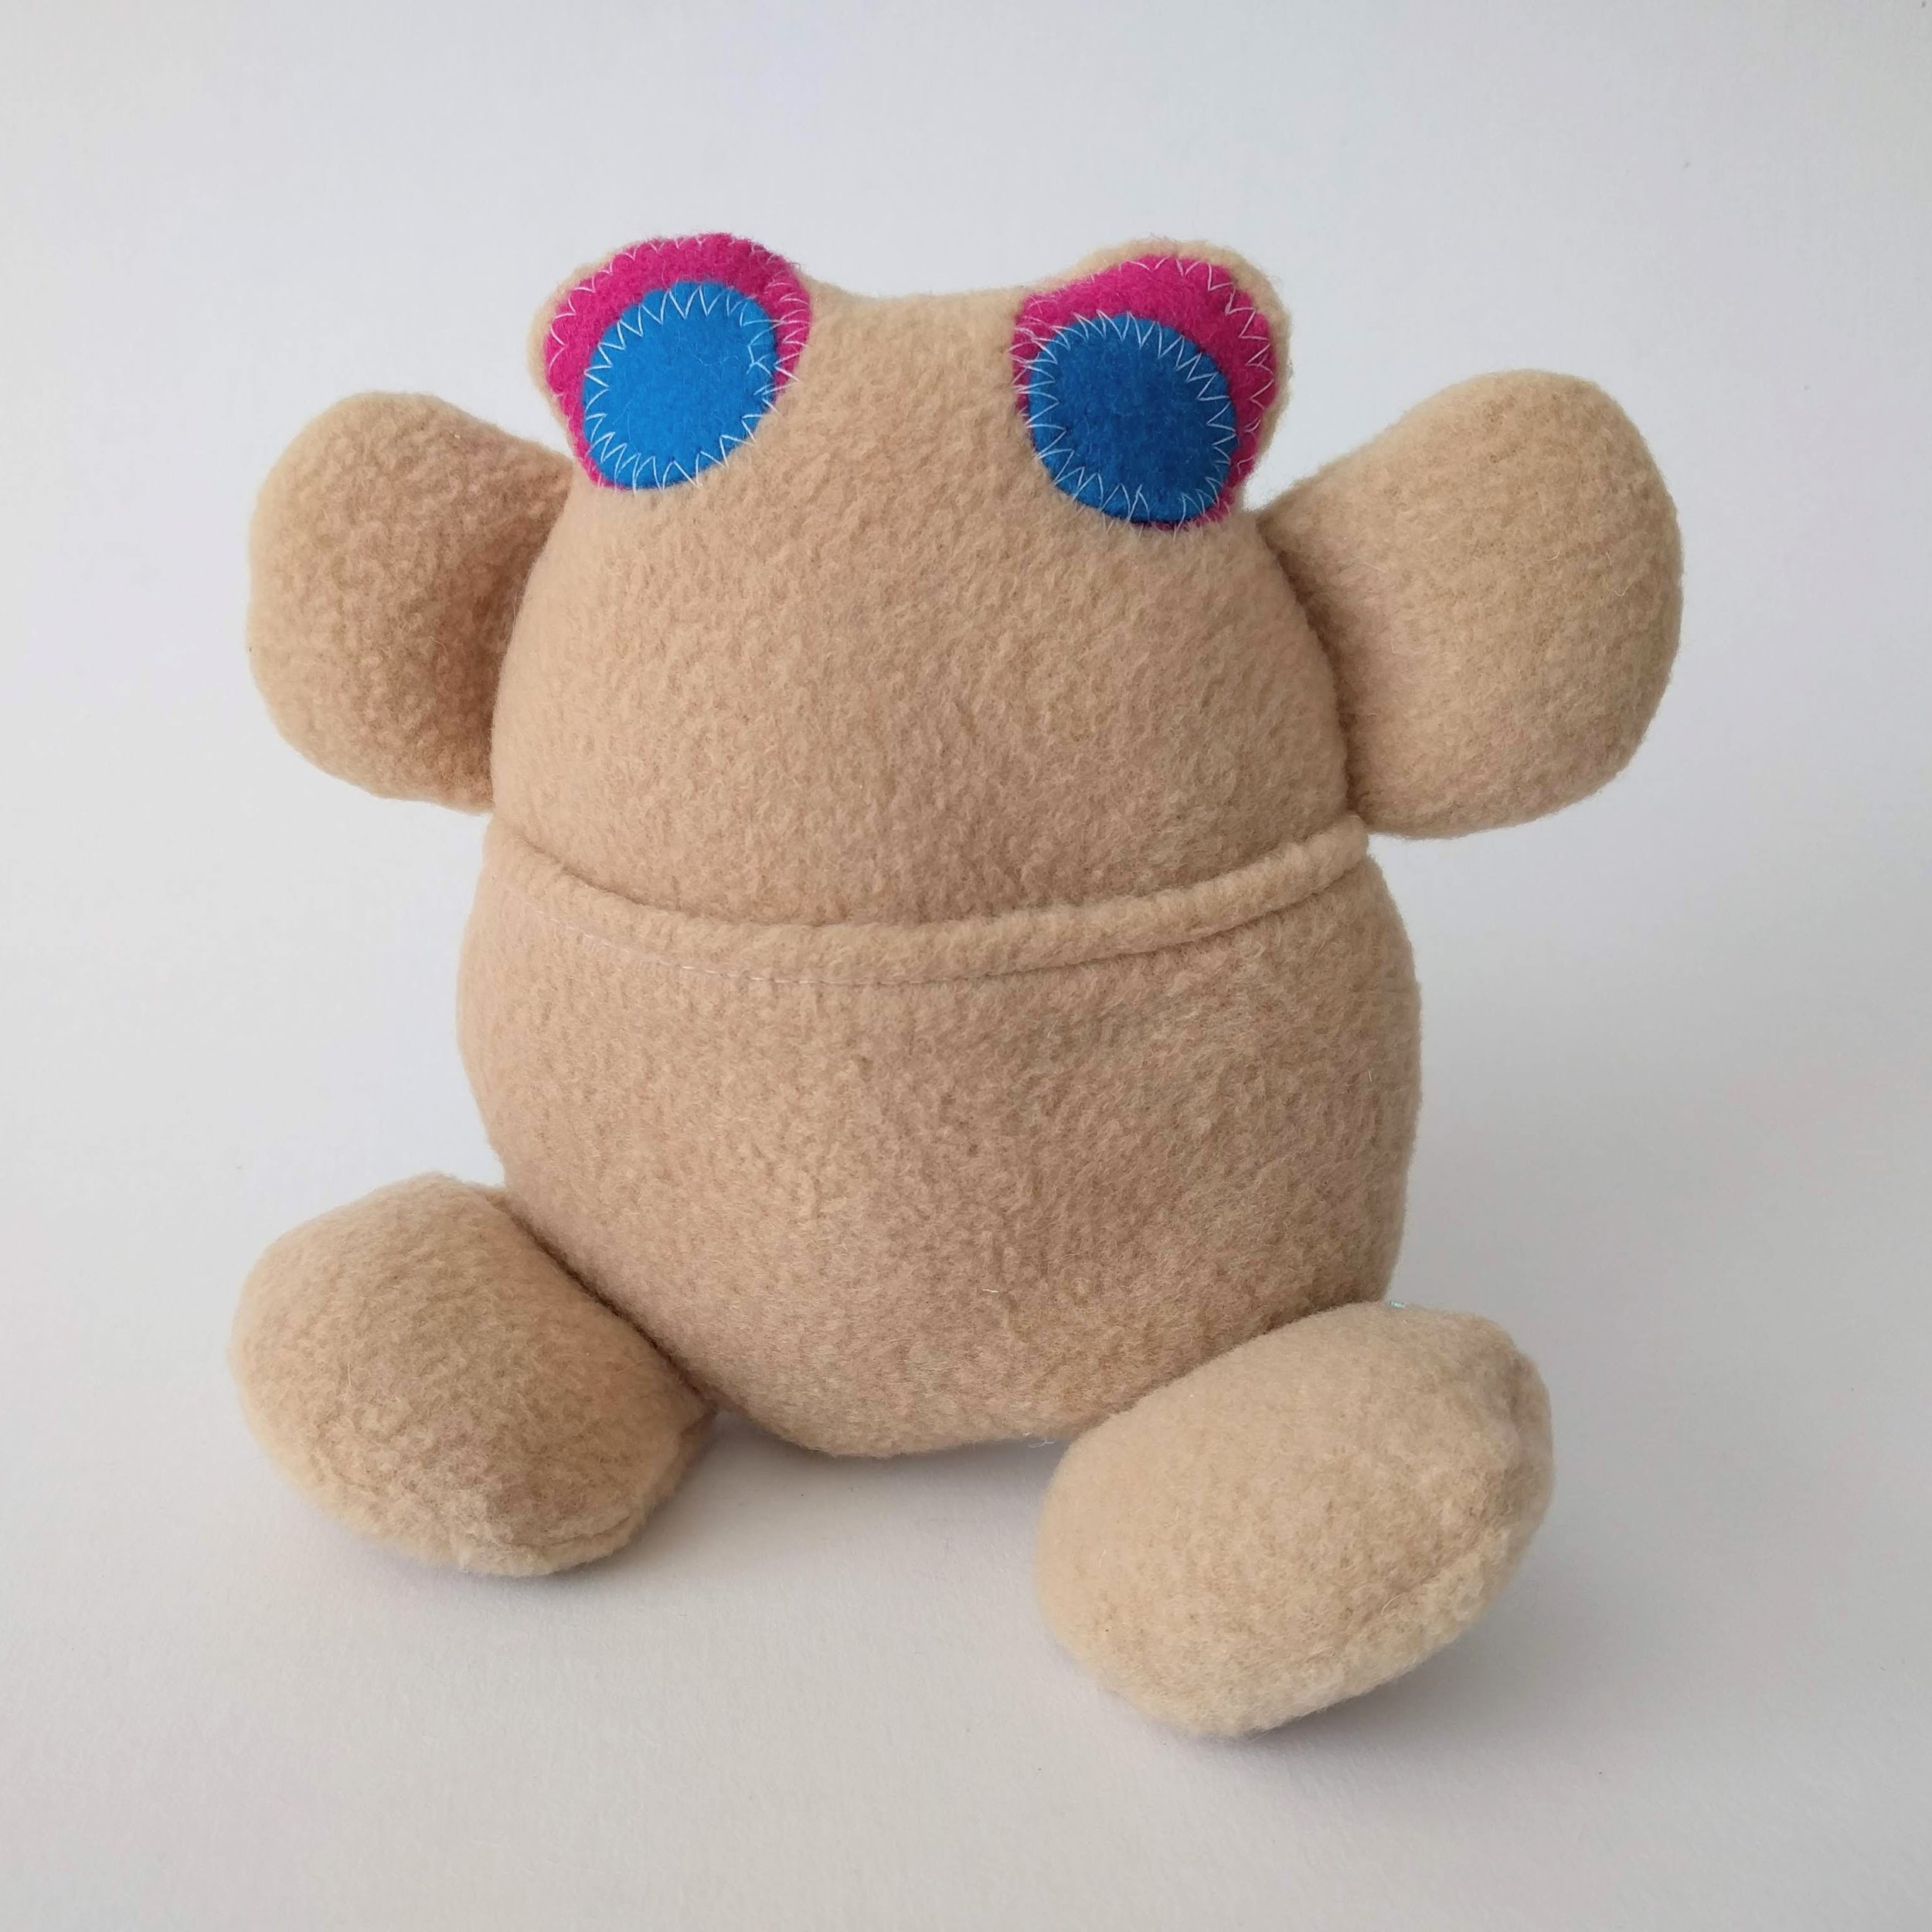 Frog Monster Plush Toy Sewing Pattern